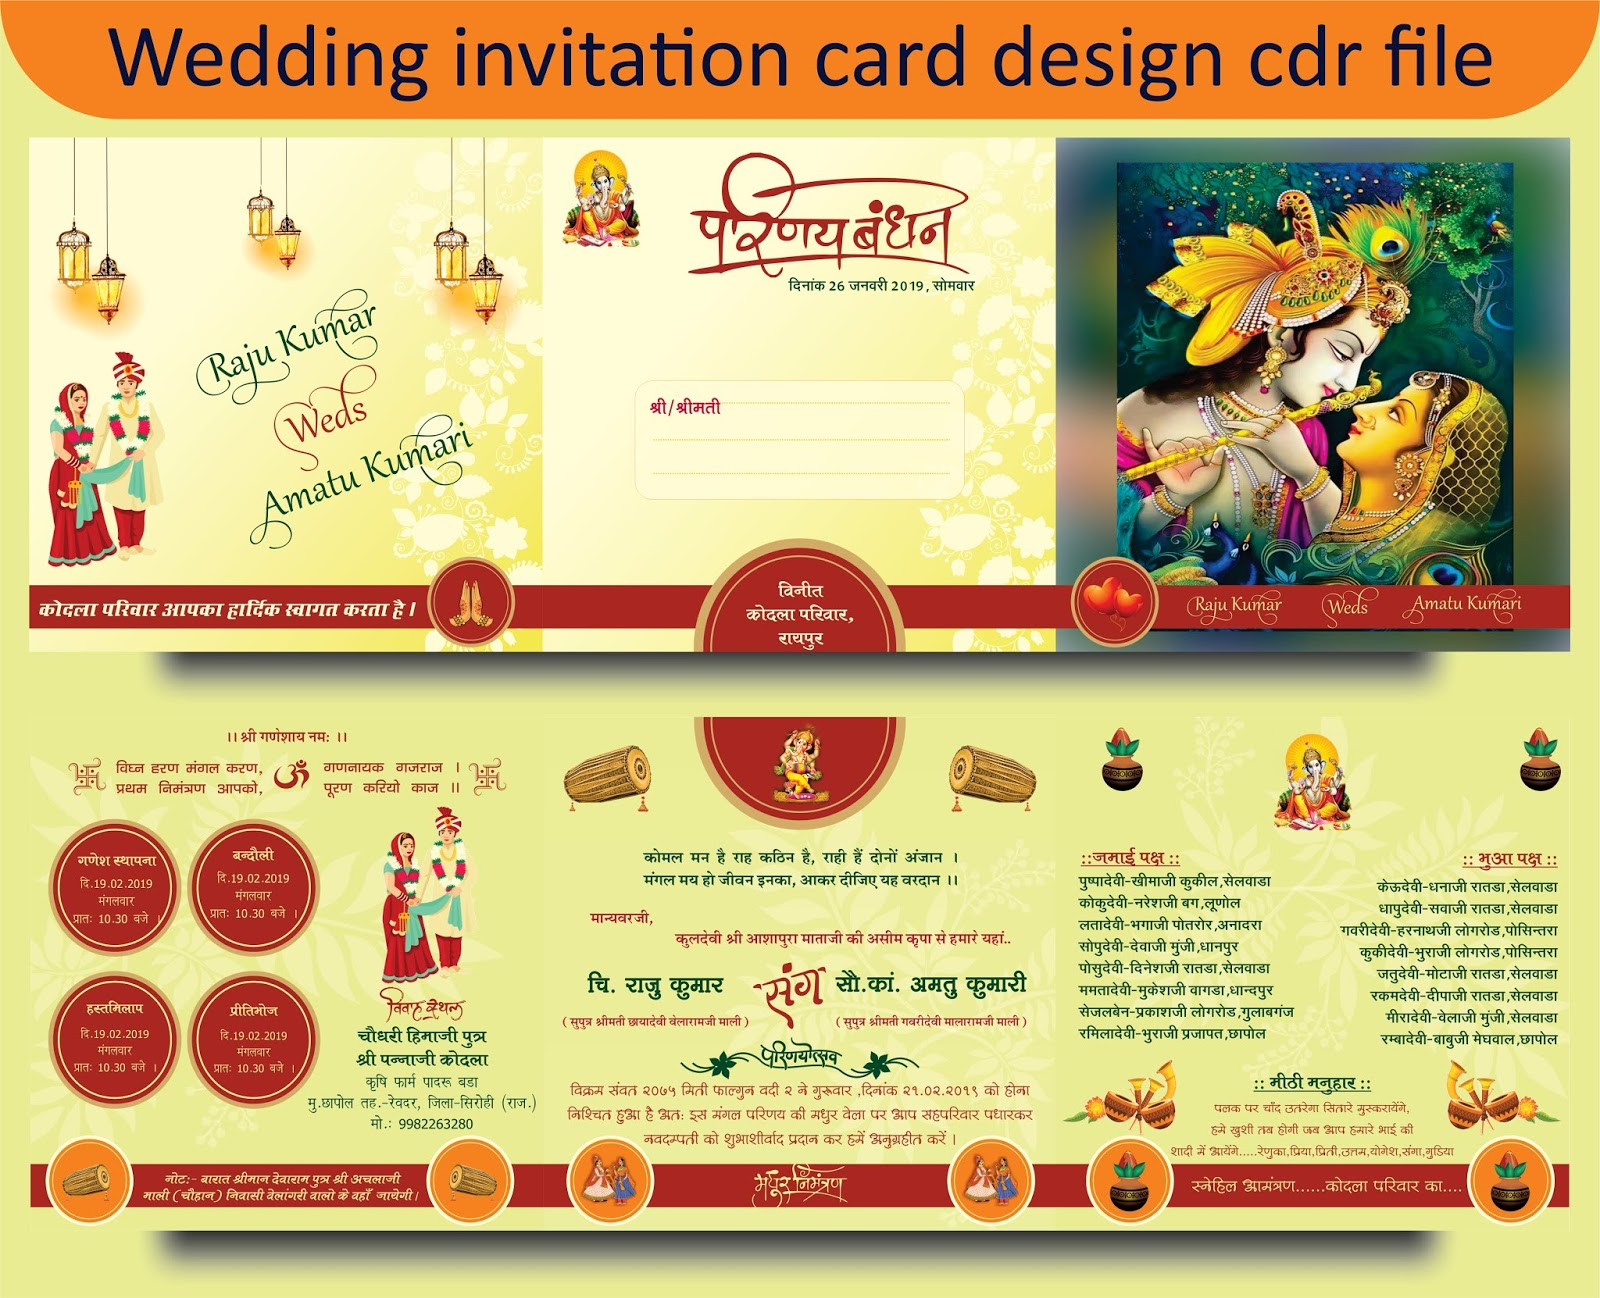 Wedding Invitation Card Design Cdr File Wedding Invitation Card Design Png Wedding Invitation Card Best Design Jpg Corel Draw Marriage Hindu Hindi Shadi Card Ar Graphics Free Cdr Psd Websites For Graphic Design